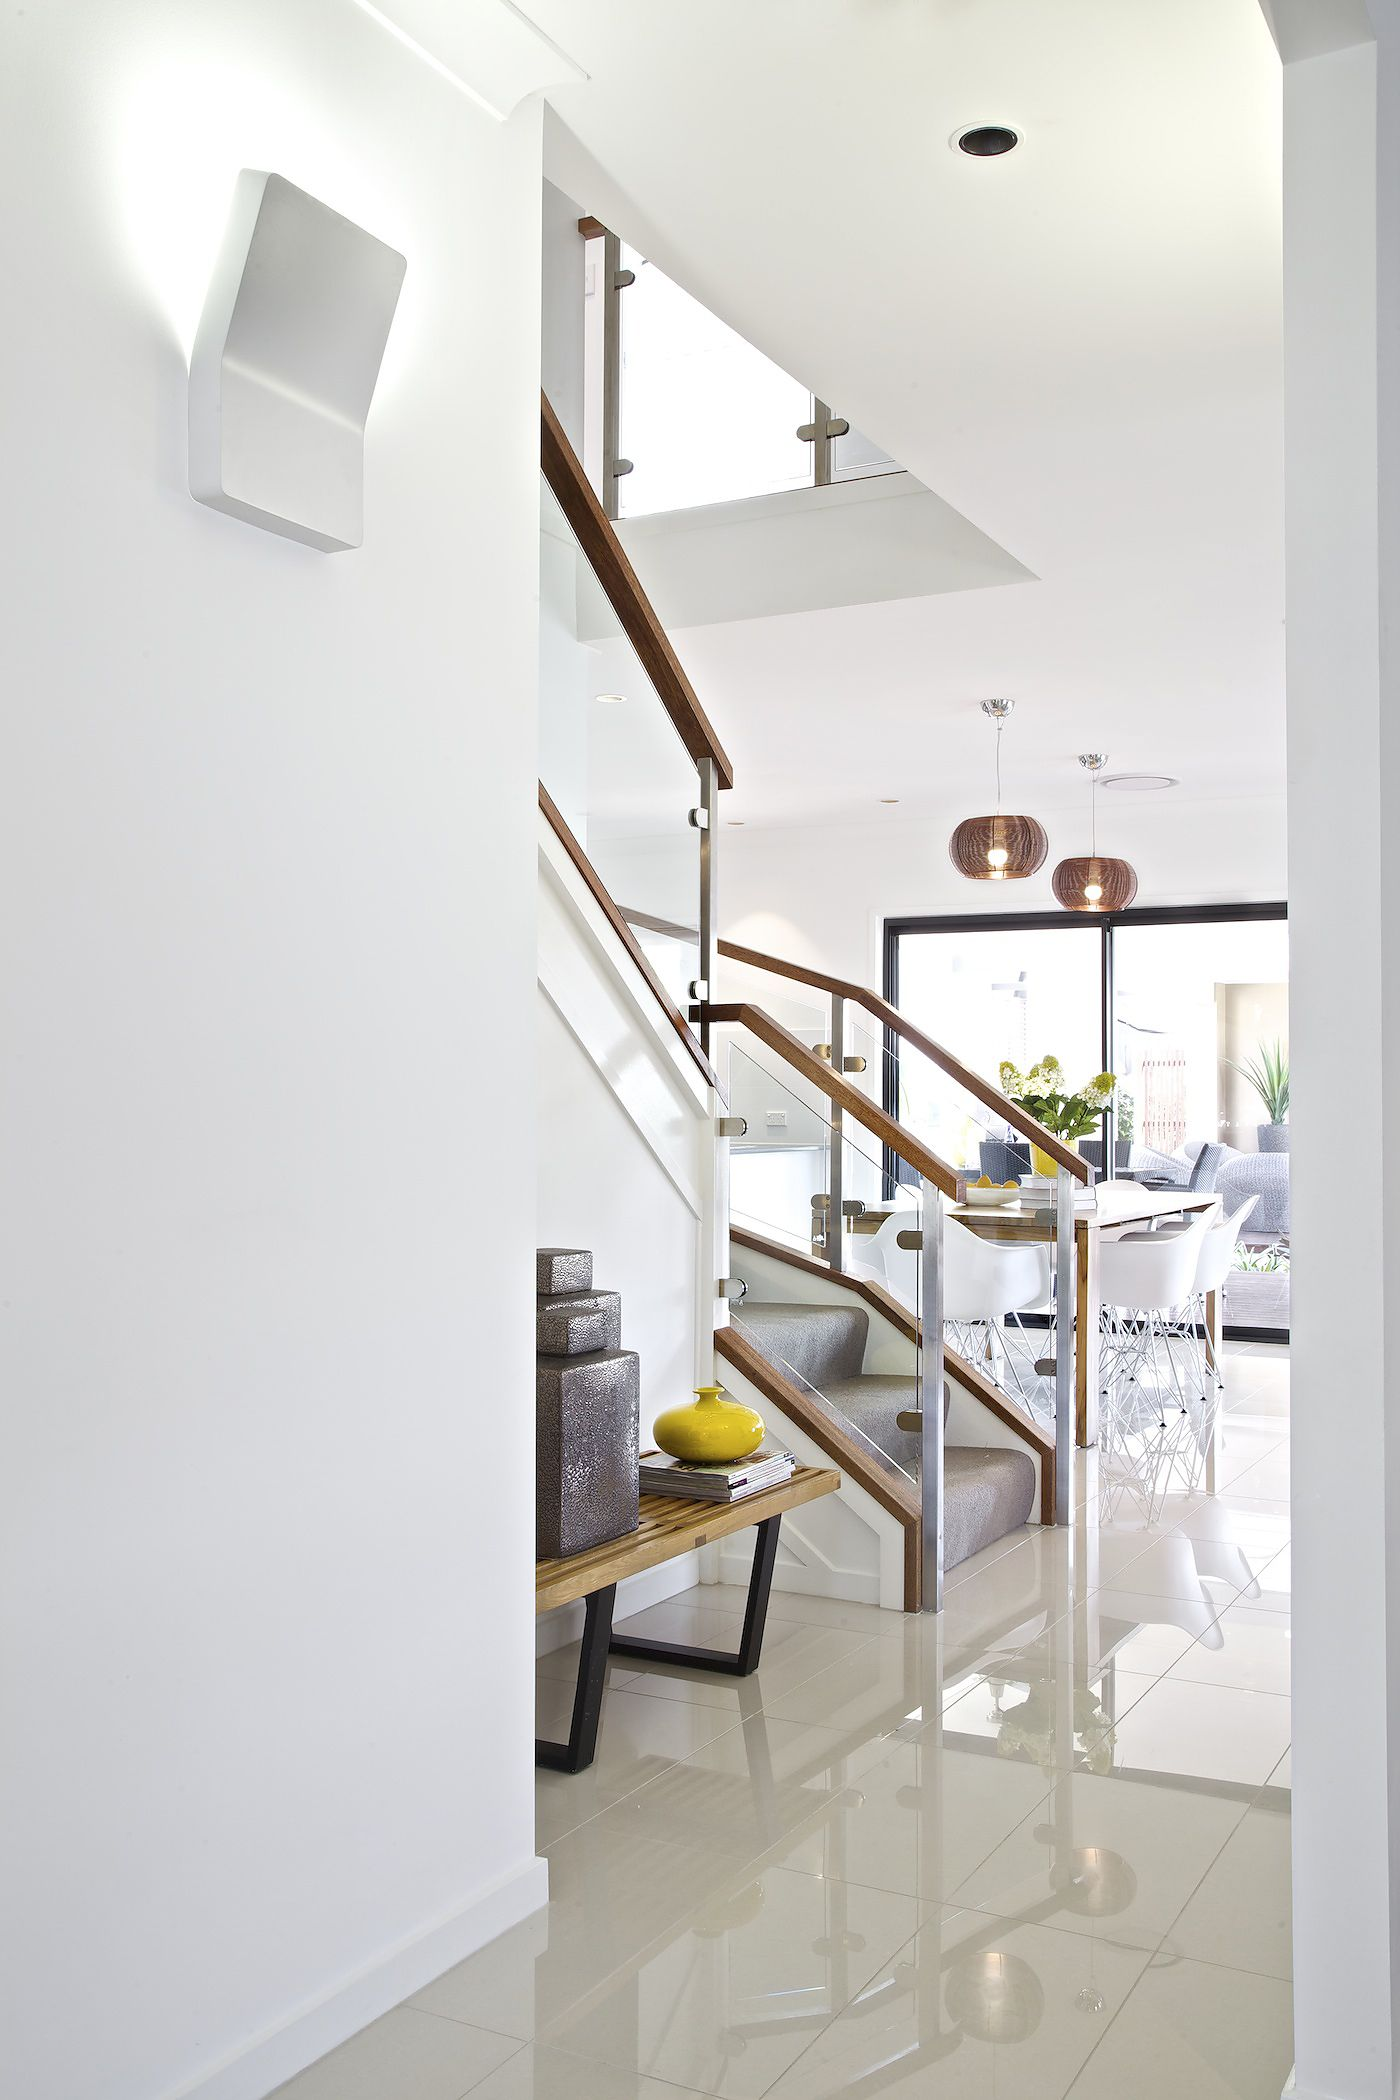 Madison 35 | Lights, Building ideas and Modern